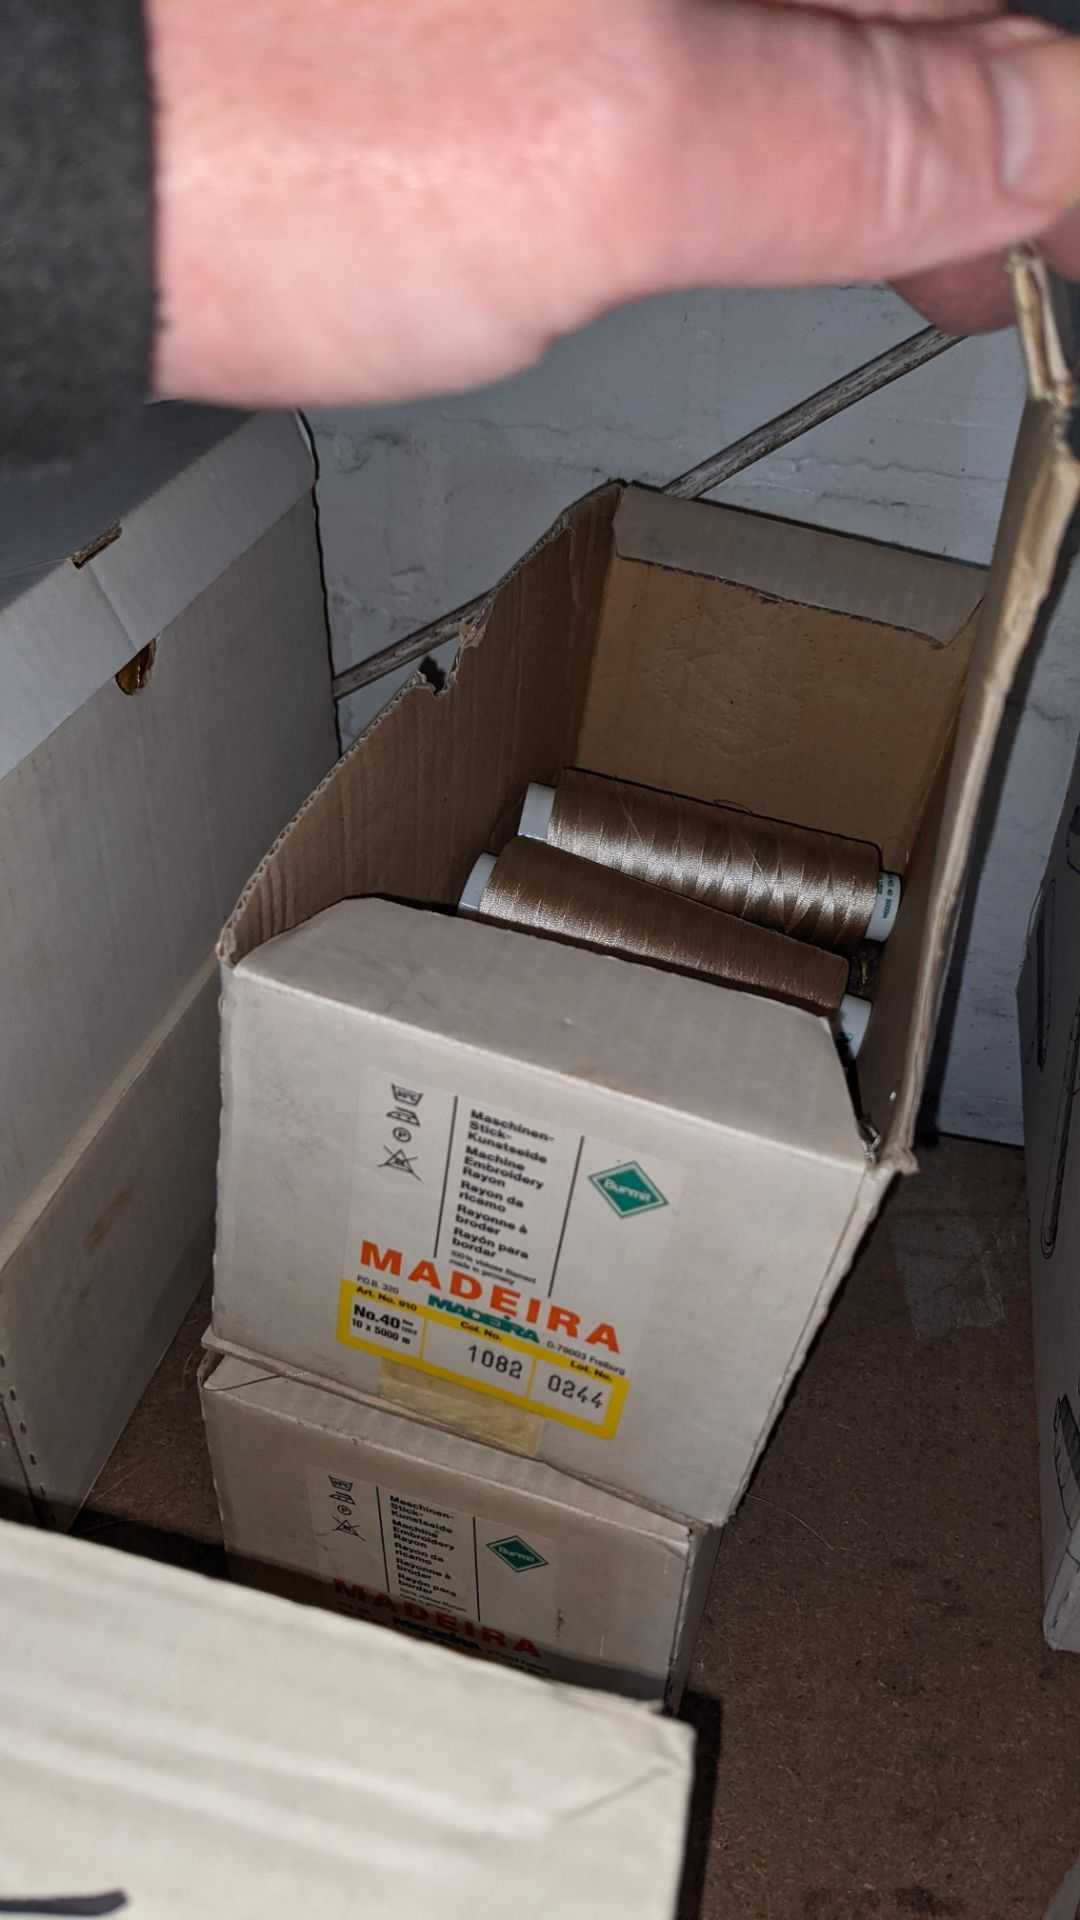 8 boxes of Madeira Burmit No. 40 rayon embroidery thread - Image 8 of 8